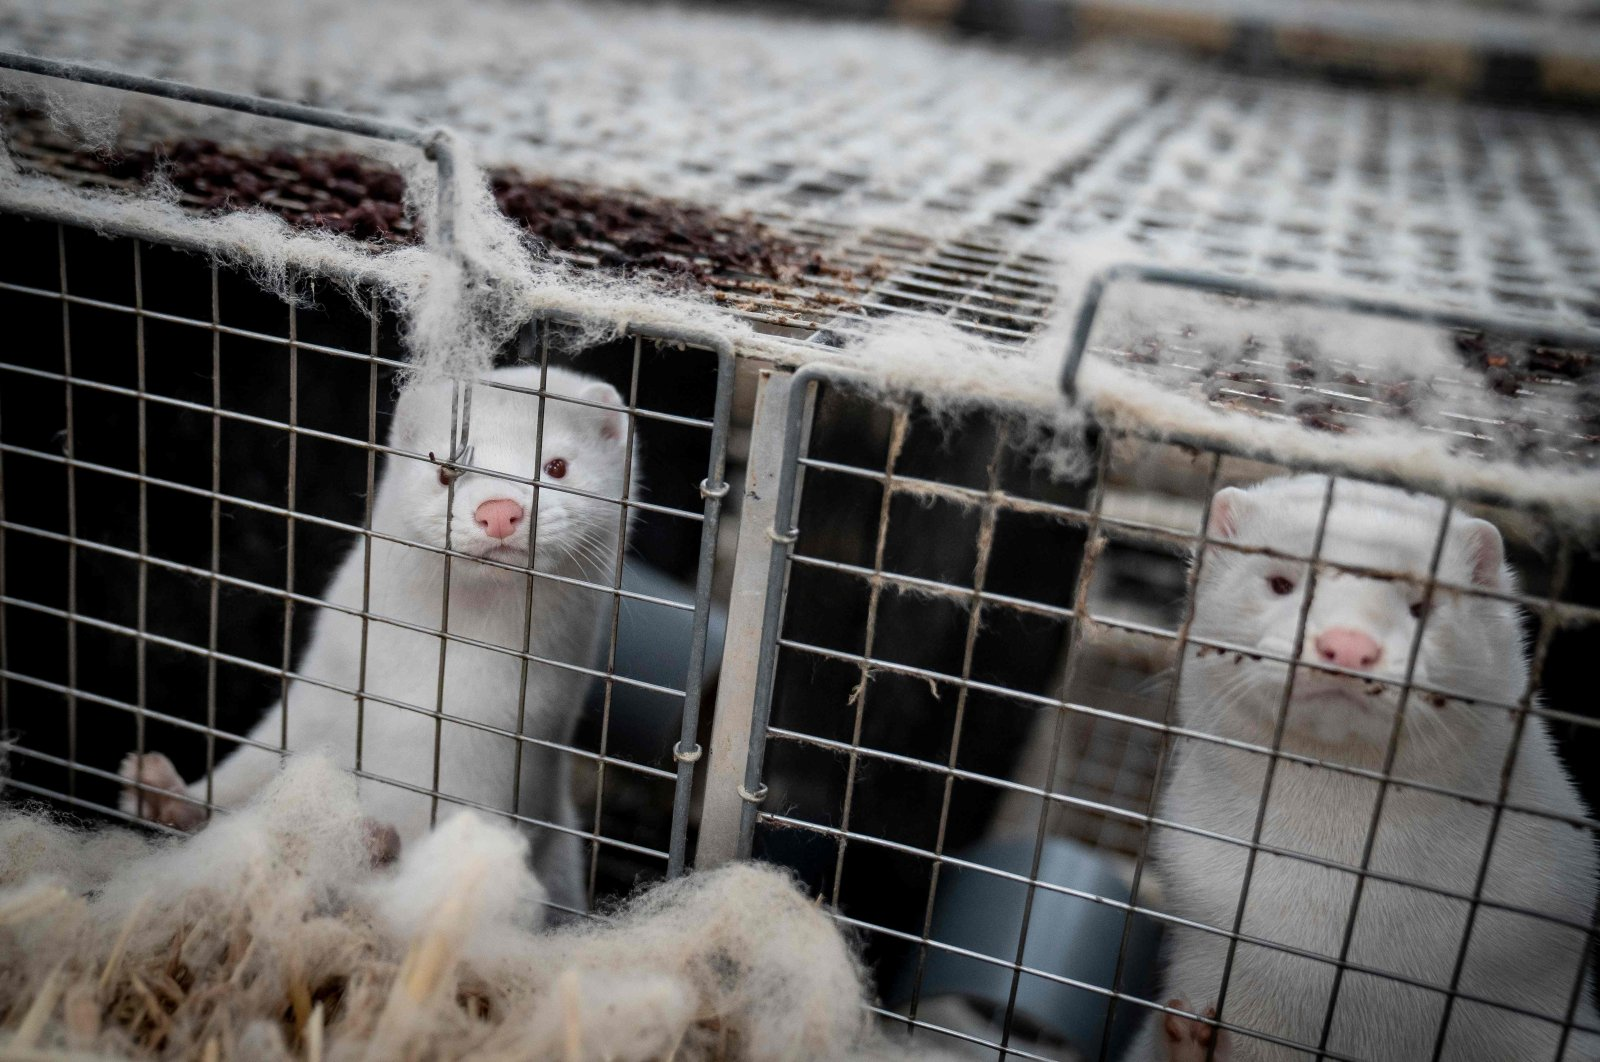 Mink look out from their cage at a farm near Naestved, Denmark, Nov. 6, 2020. (AFP Photo)